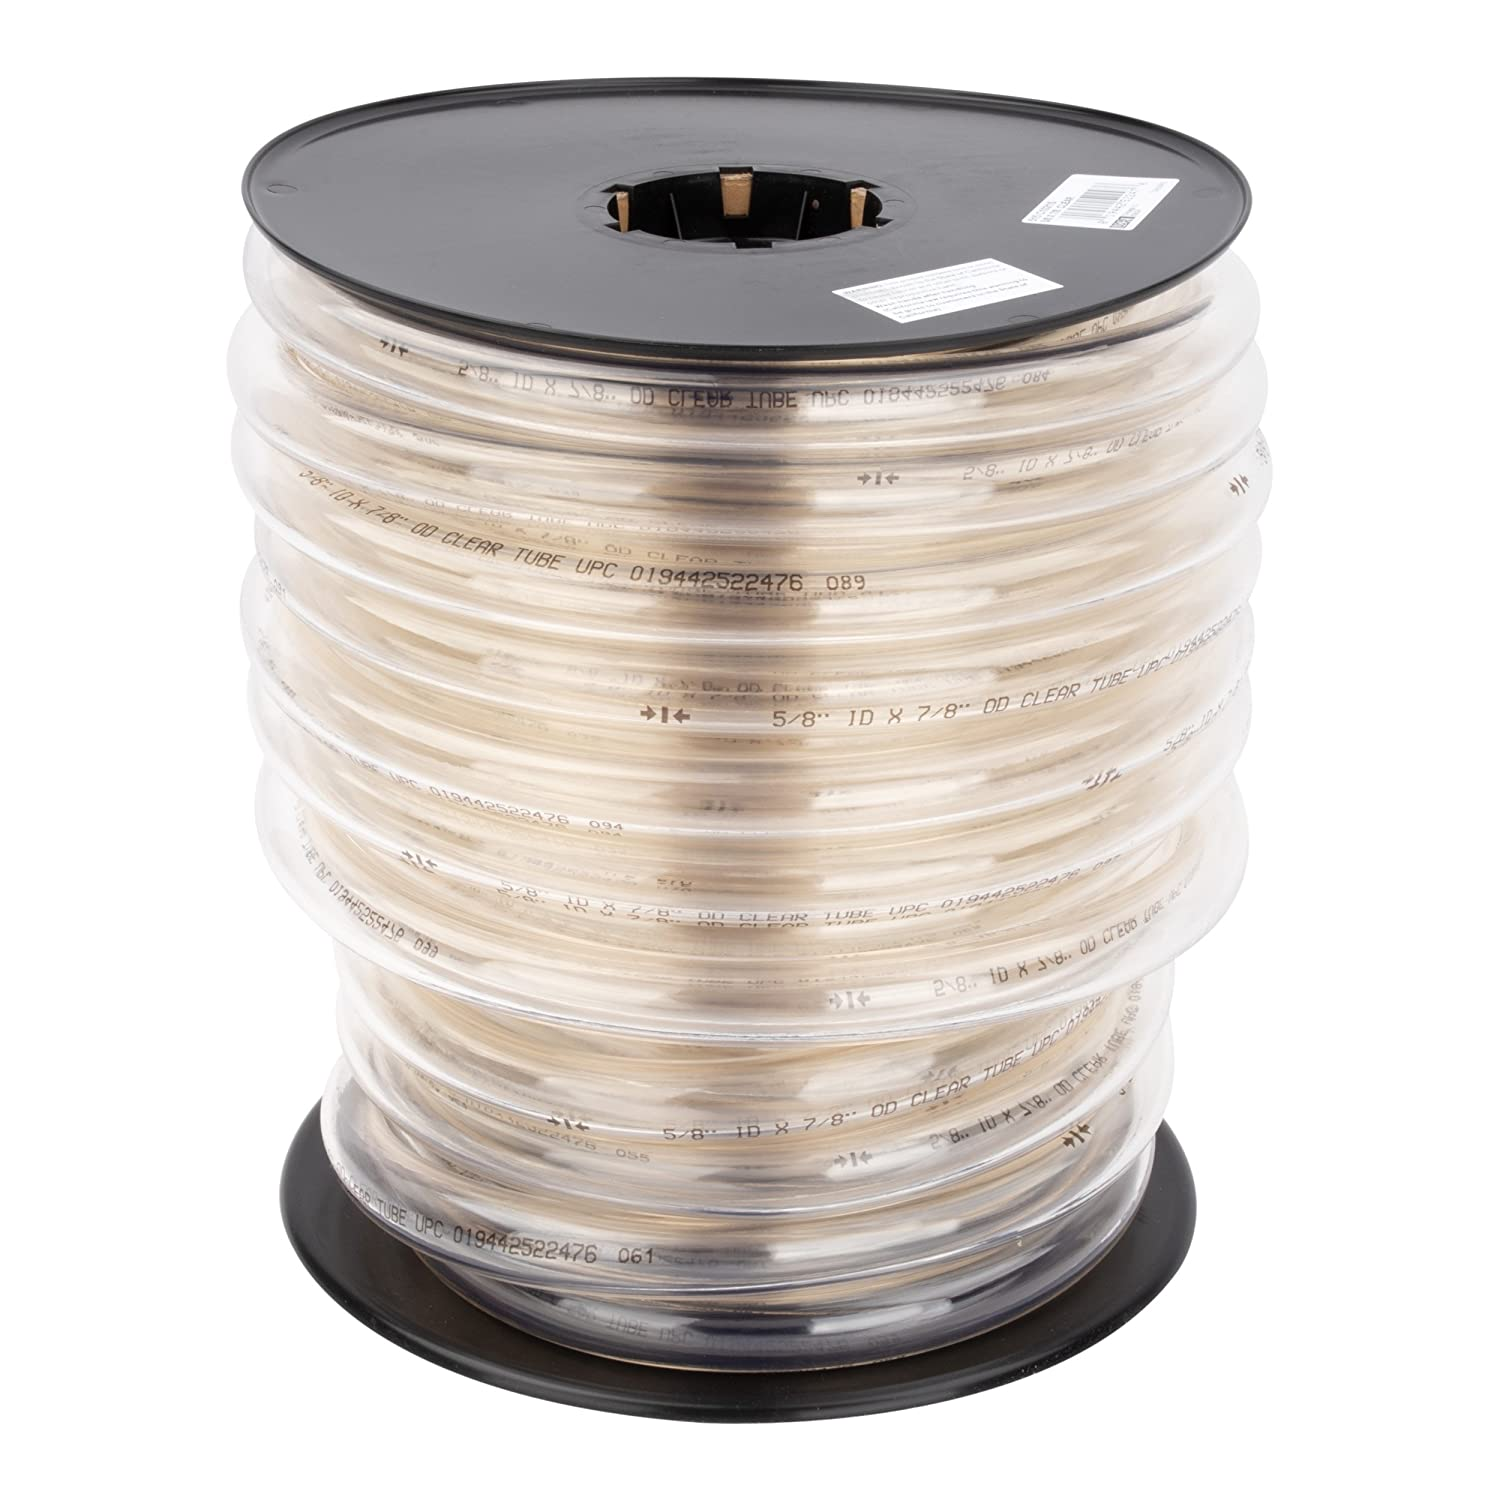 "5/8"" X 7/8"" Clear Vinyl Tubing by LDR 